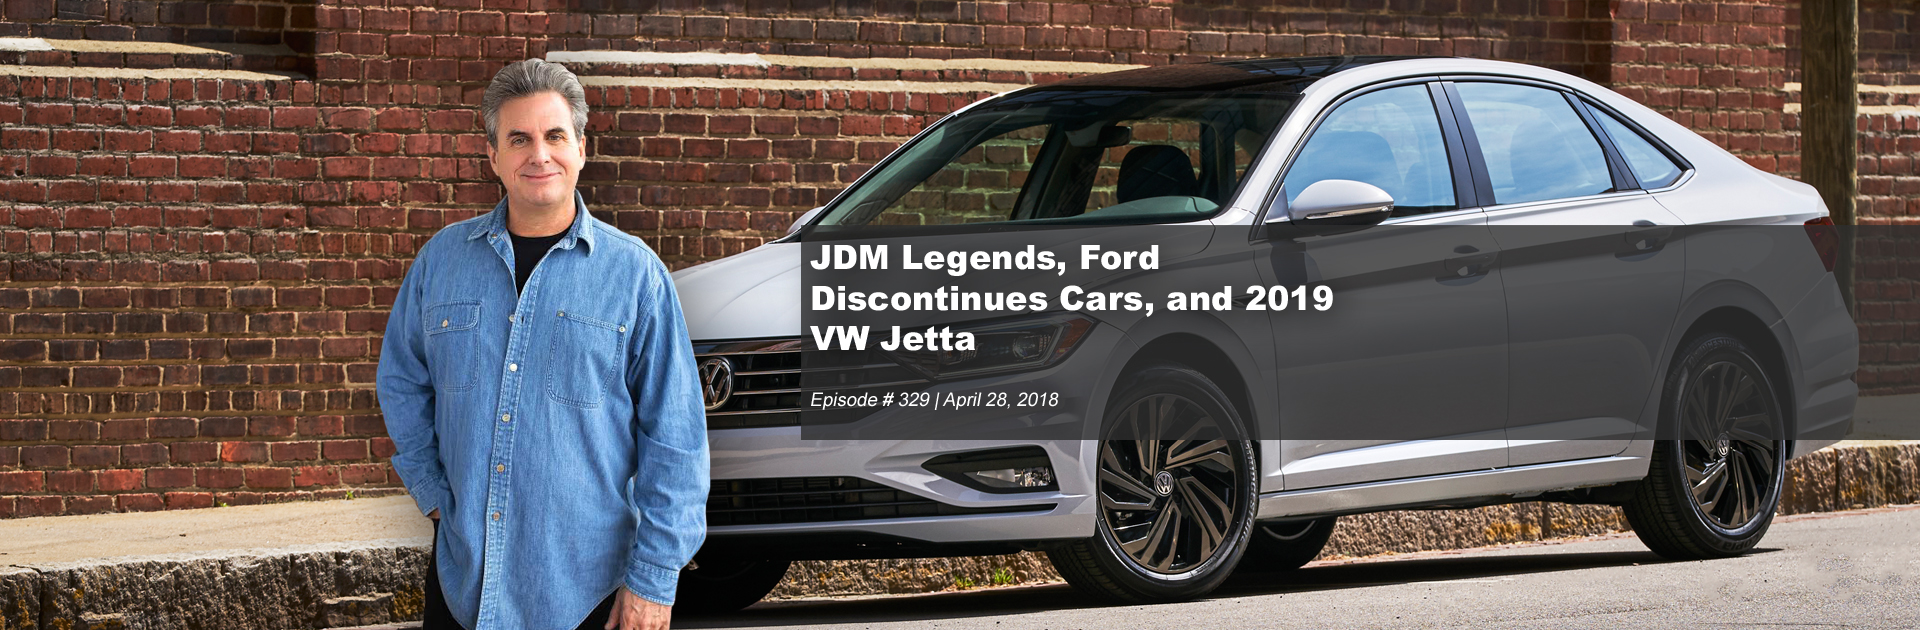 JDM Legends, Ford Discontinues Cars, and 2019 VW Jetta | #329